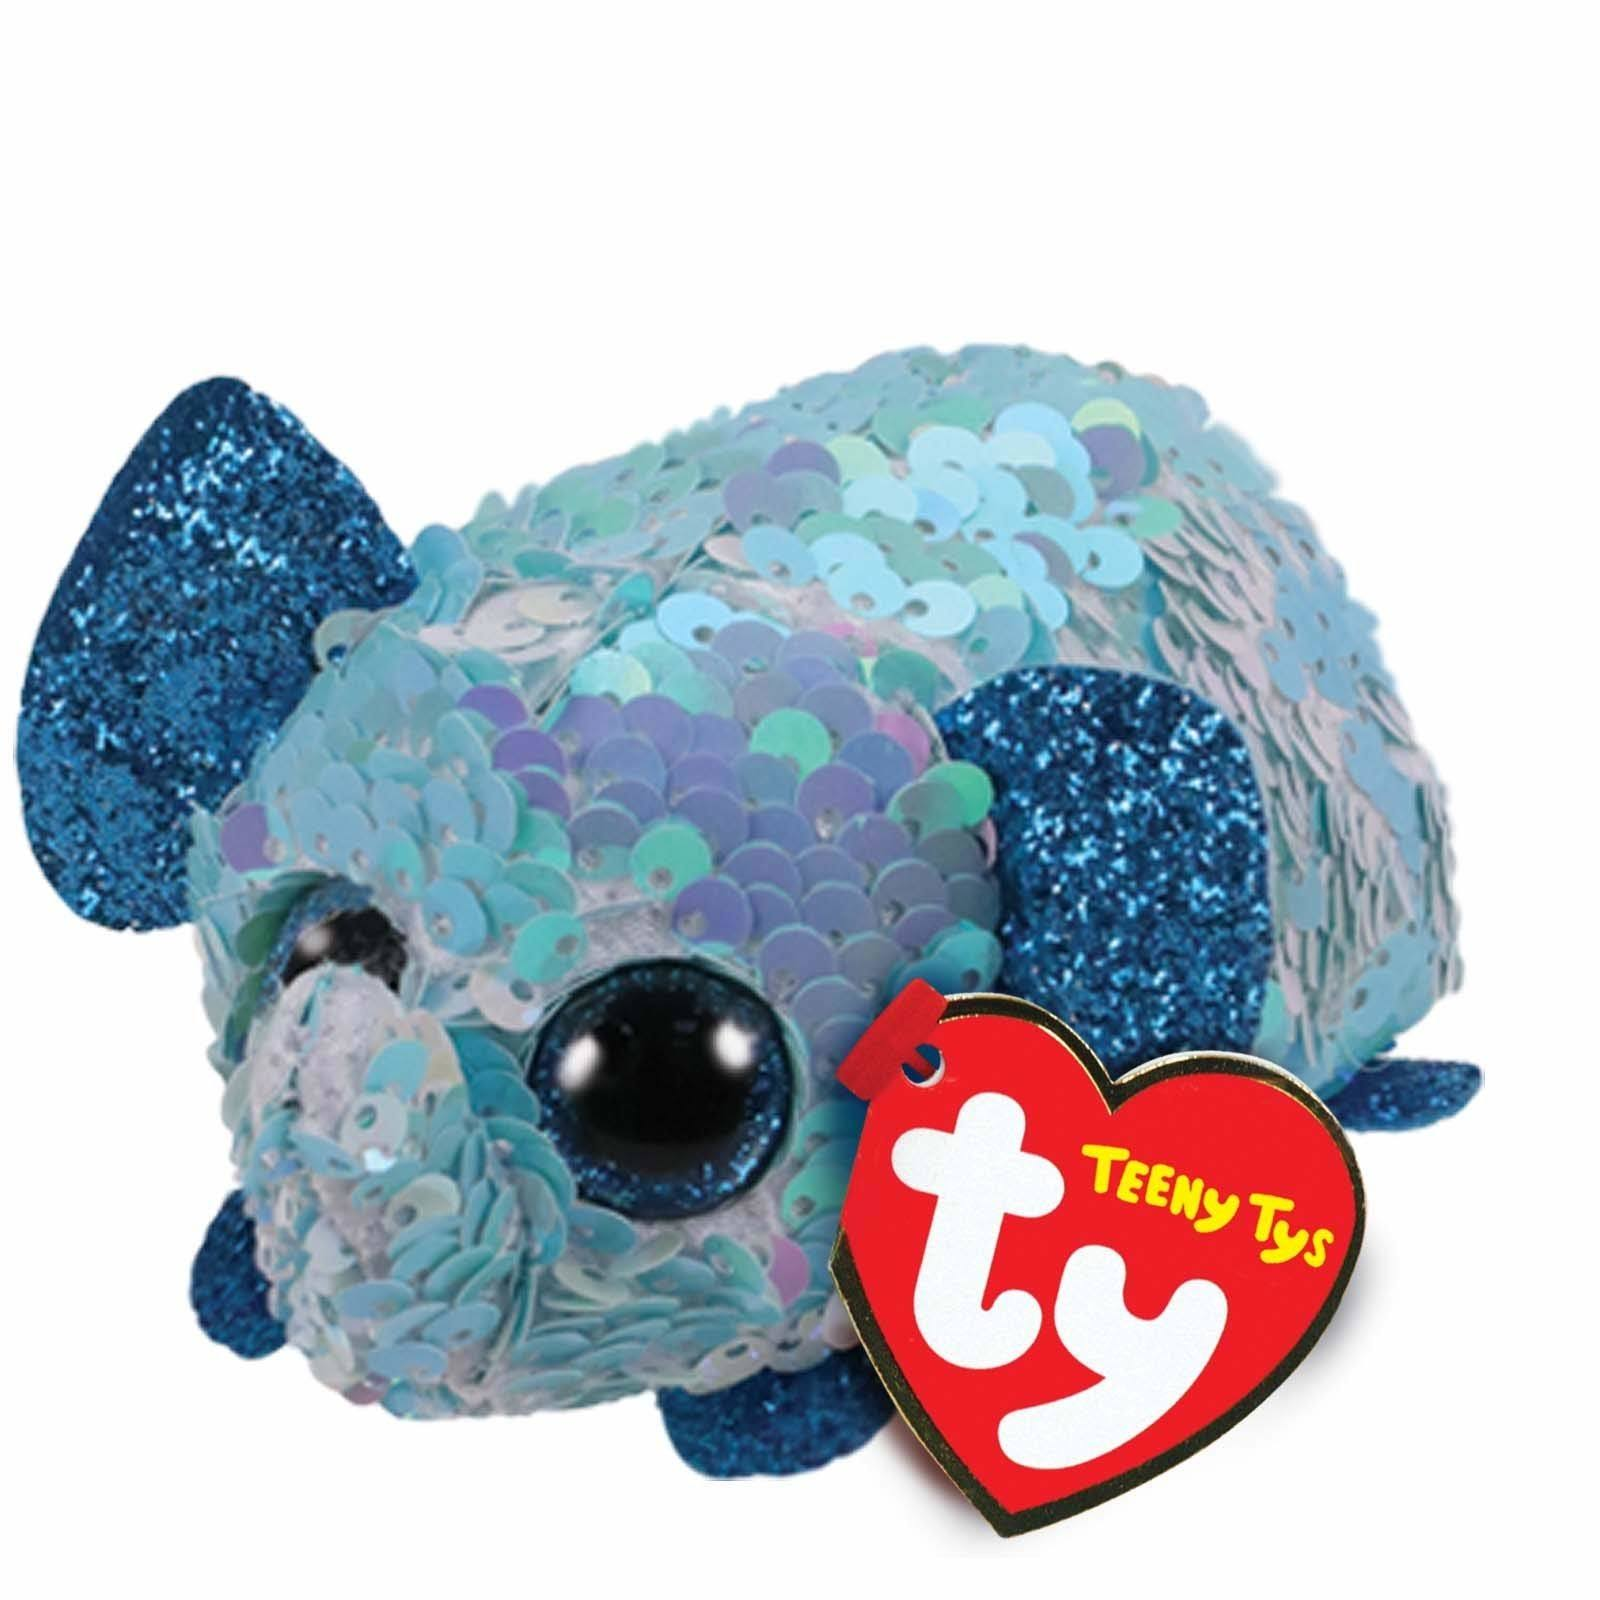 Ty Beanie Boos Teeny Tys Stackable Sequin Plush Stuart The Elephant